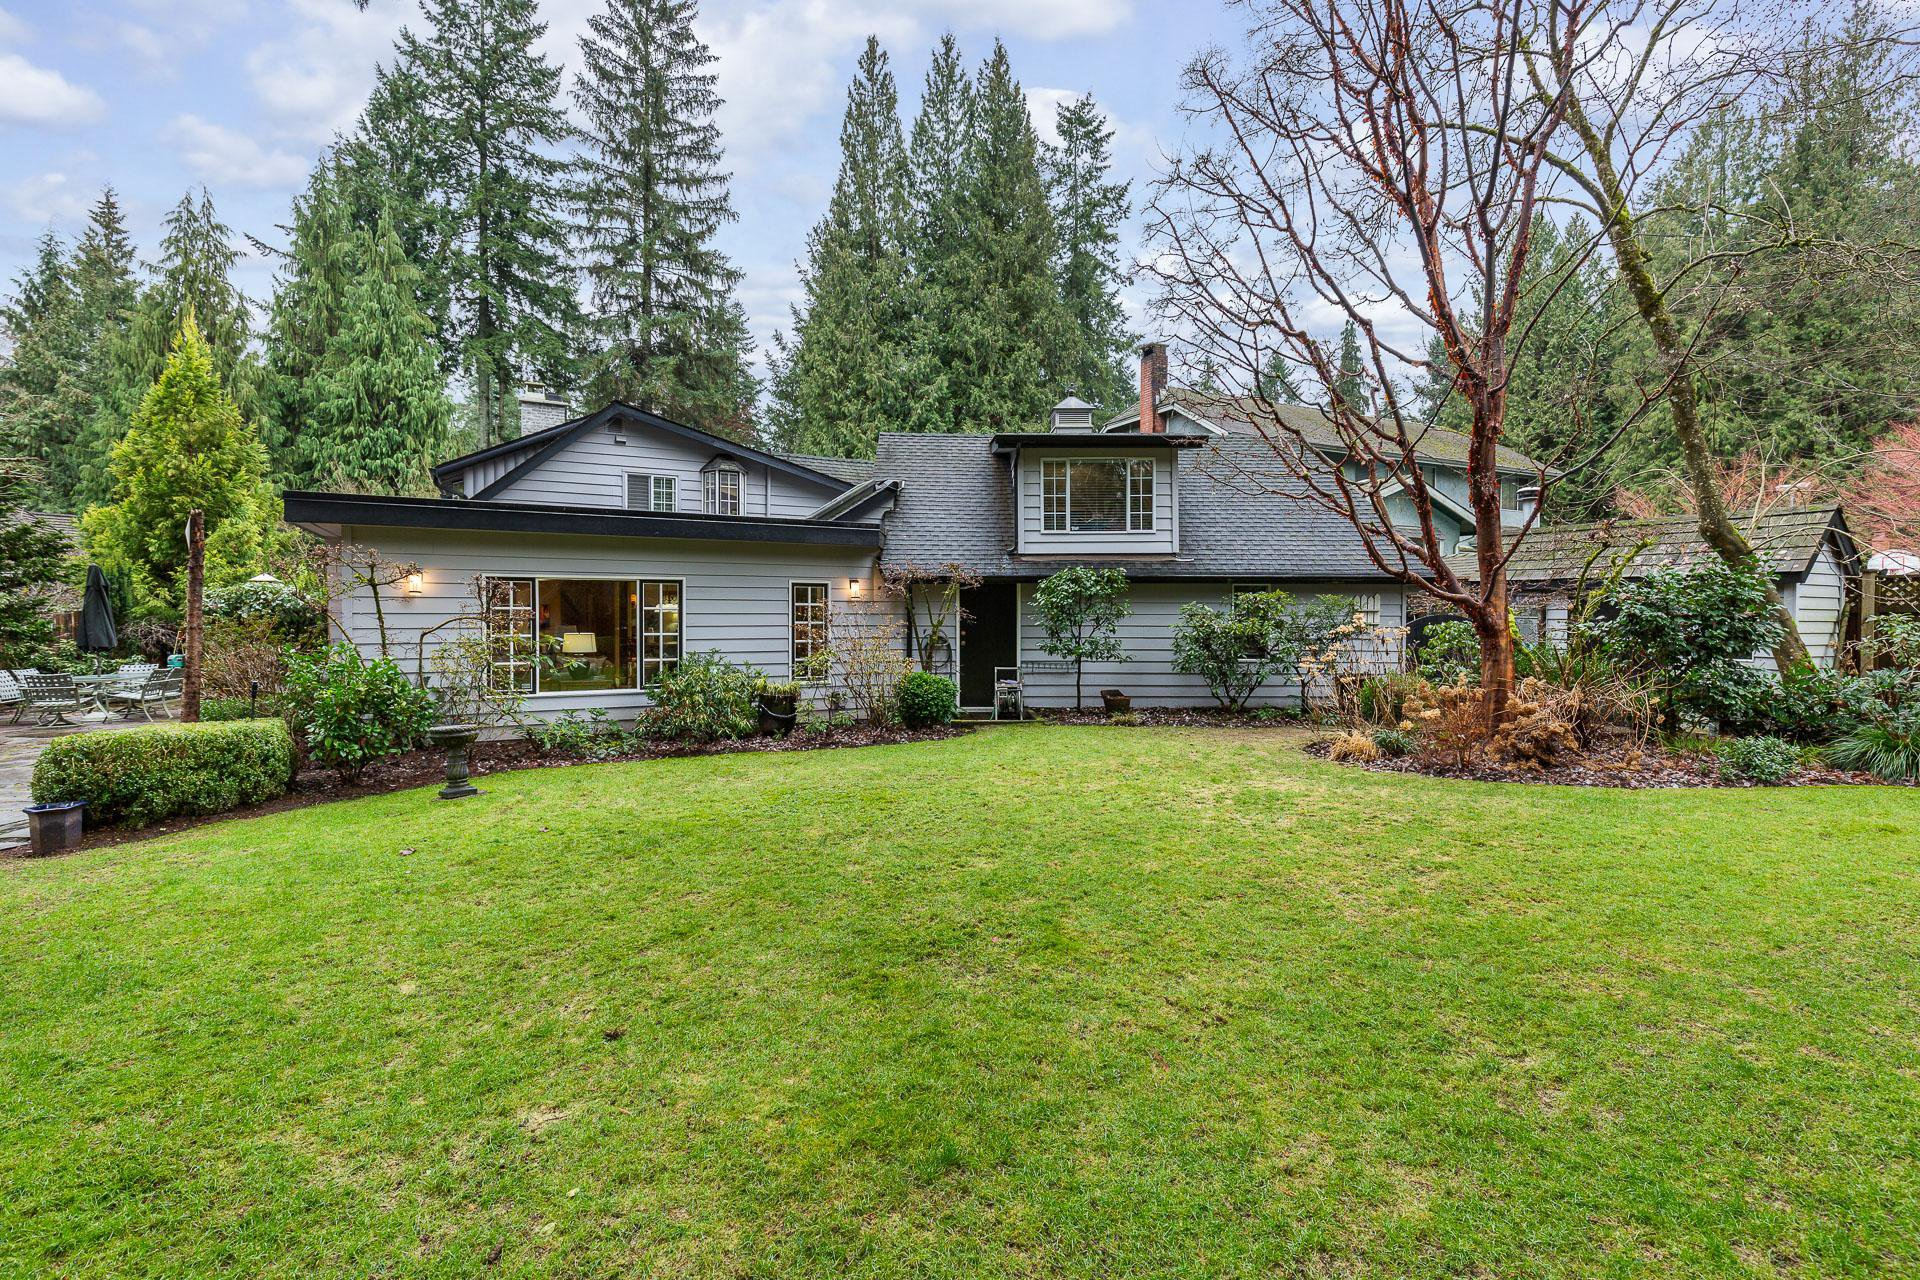 Photo 2: Photos: 1160 Hilary Place in North Vancouver: Seymour NV House for sale : MLS®# R2336427